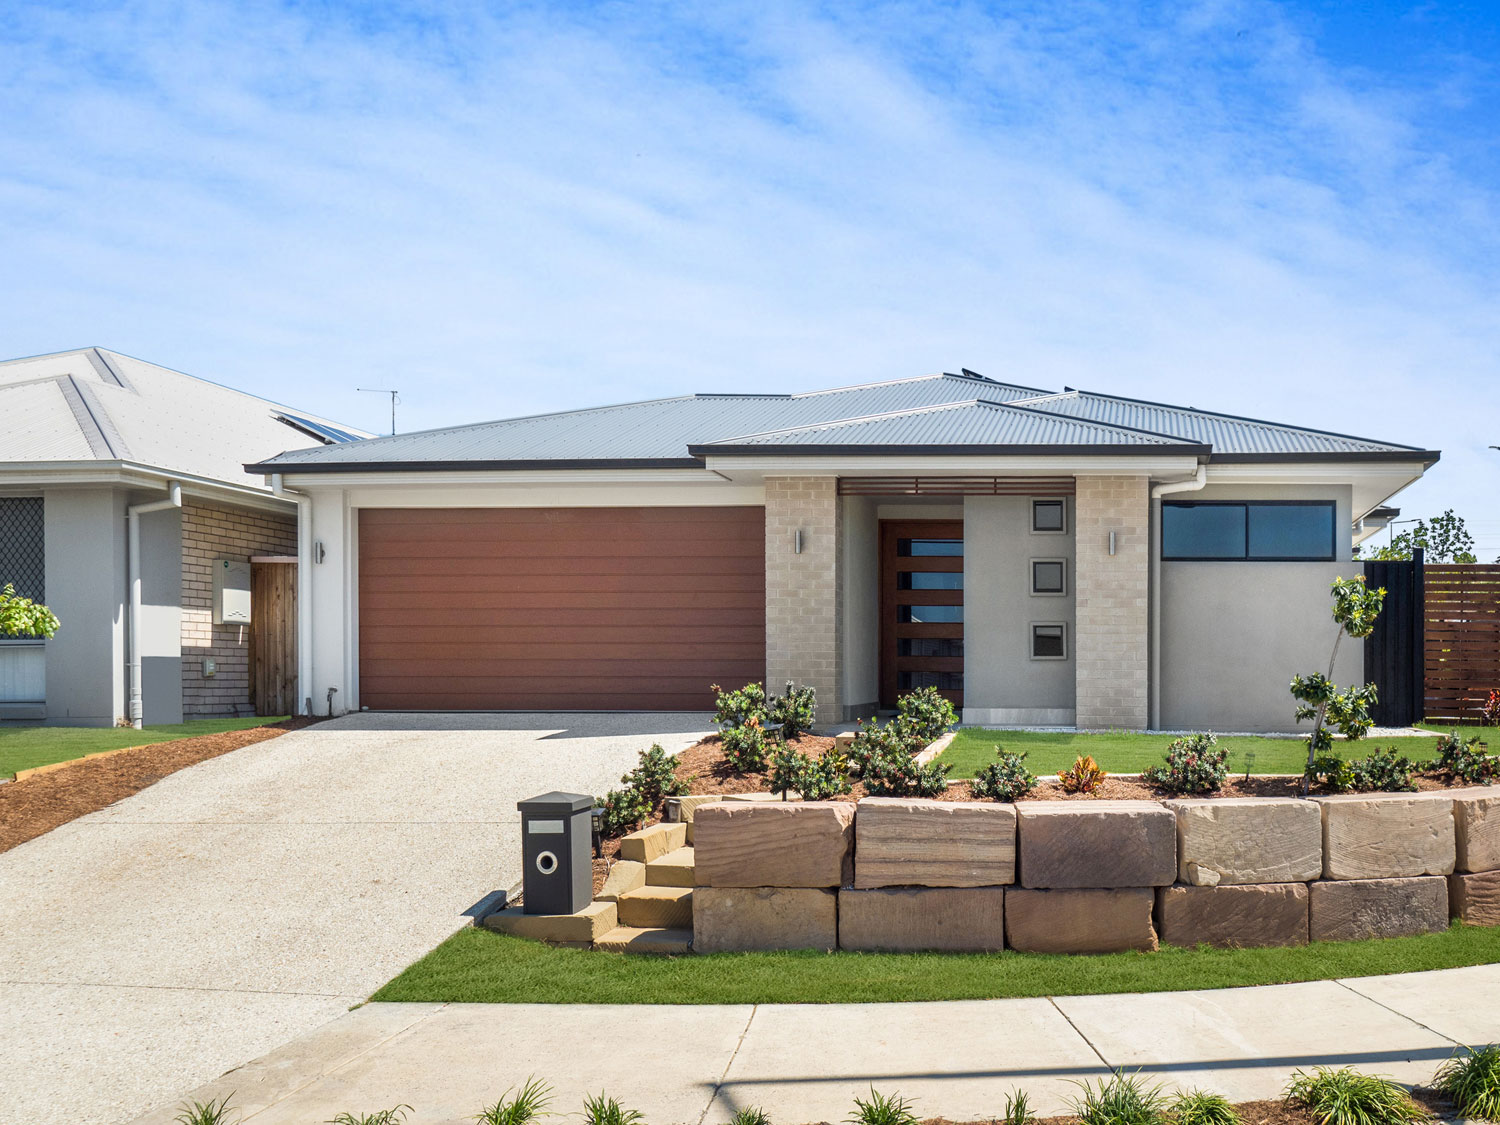 12 image photoshoot package - capturing all the beautiful living spaces of a home for sale at Waterford, a suburb approximately 1hr drive south of Brisbane.